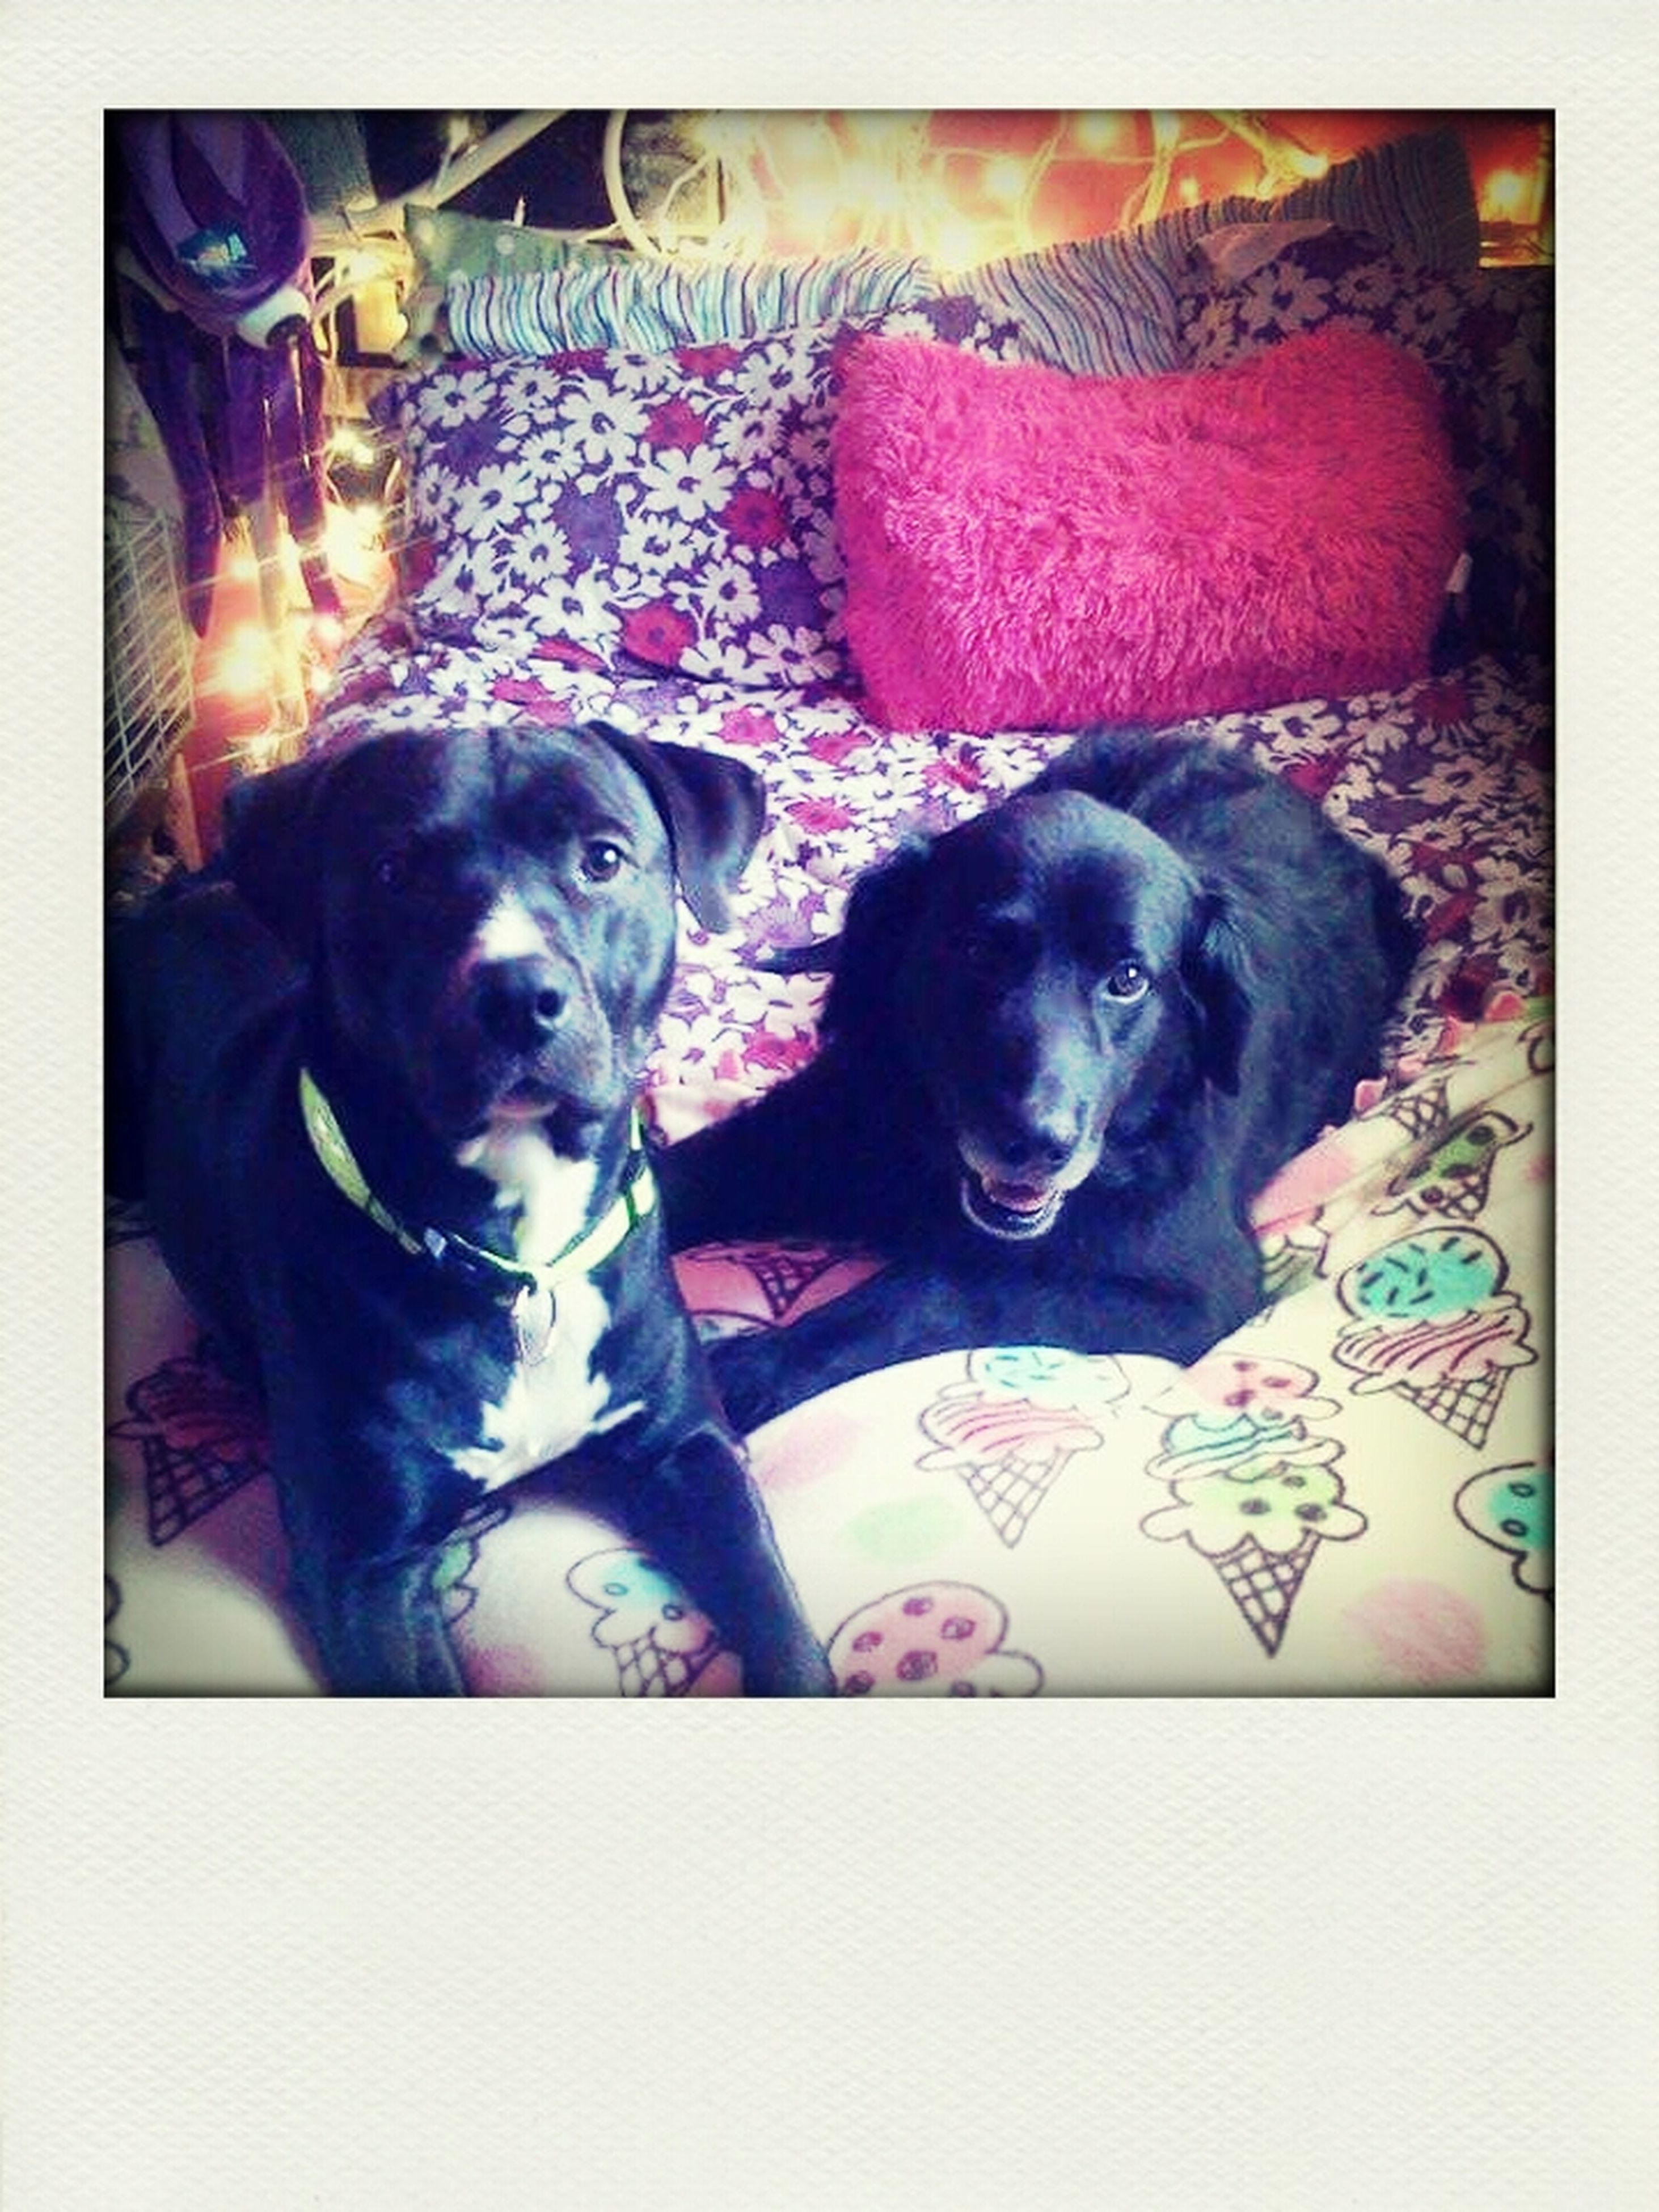 pets, domestic animals, animal themes, dog, mammal, one animal, indoors, transfer print, looking at camera, portrait, black color, auto post production filter, relaxation, sofa, lying down, resting, home interior, no people, high angle view, two animals